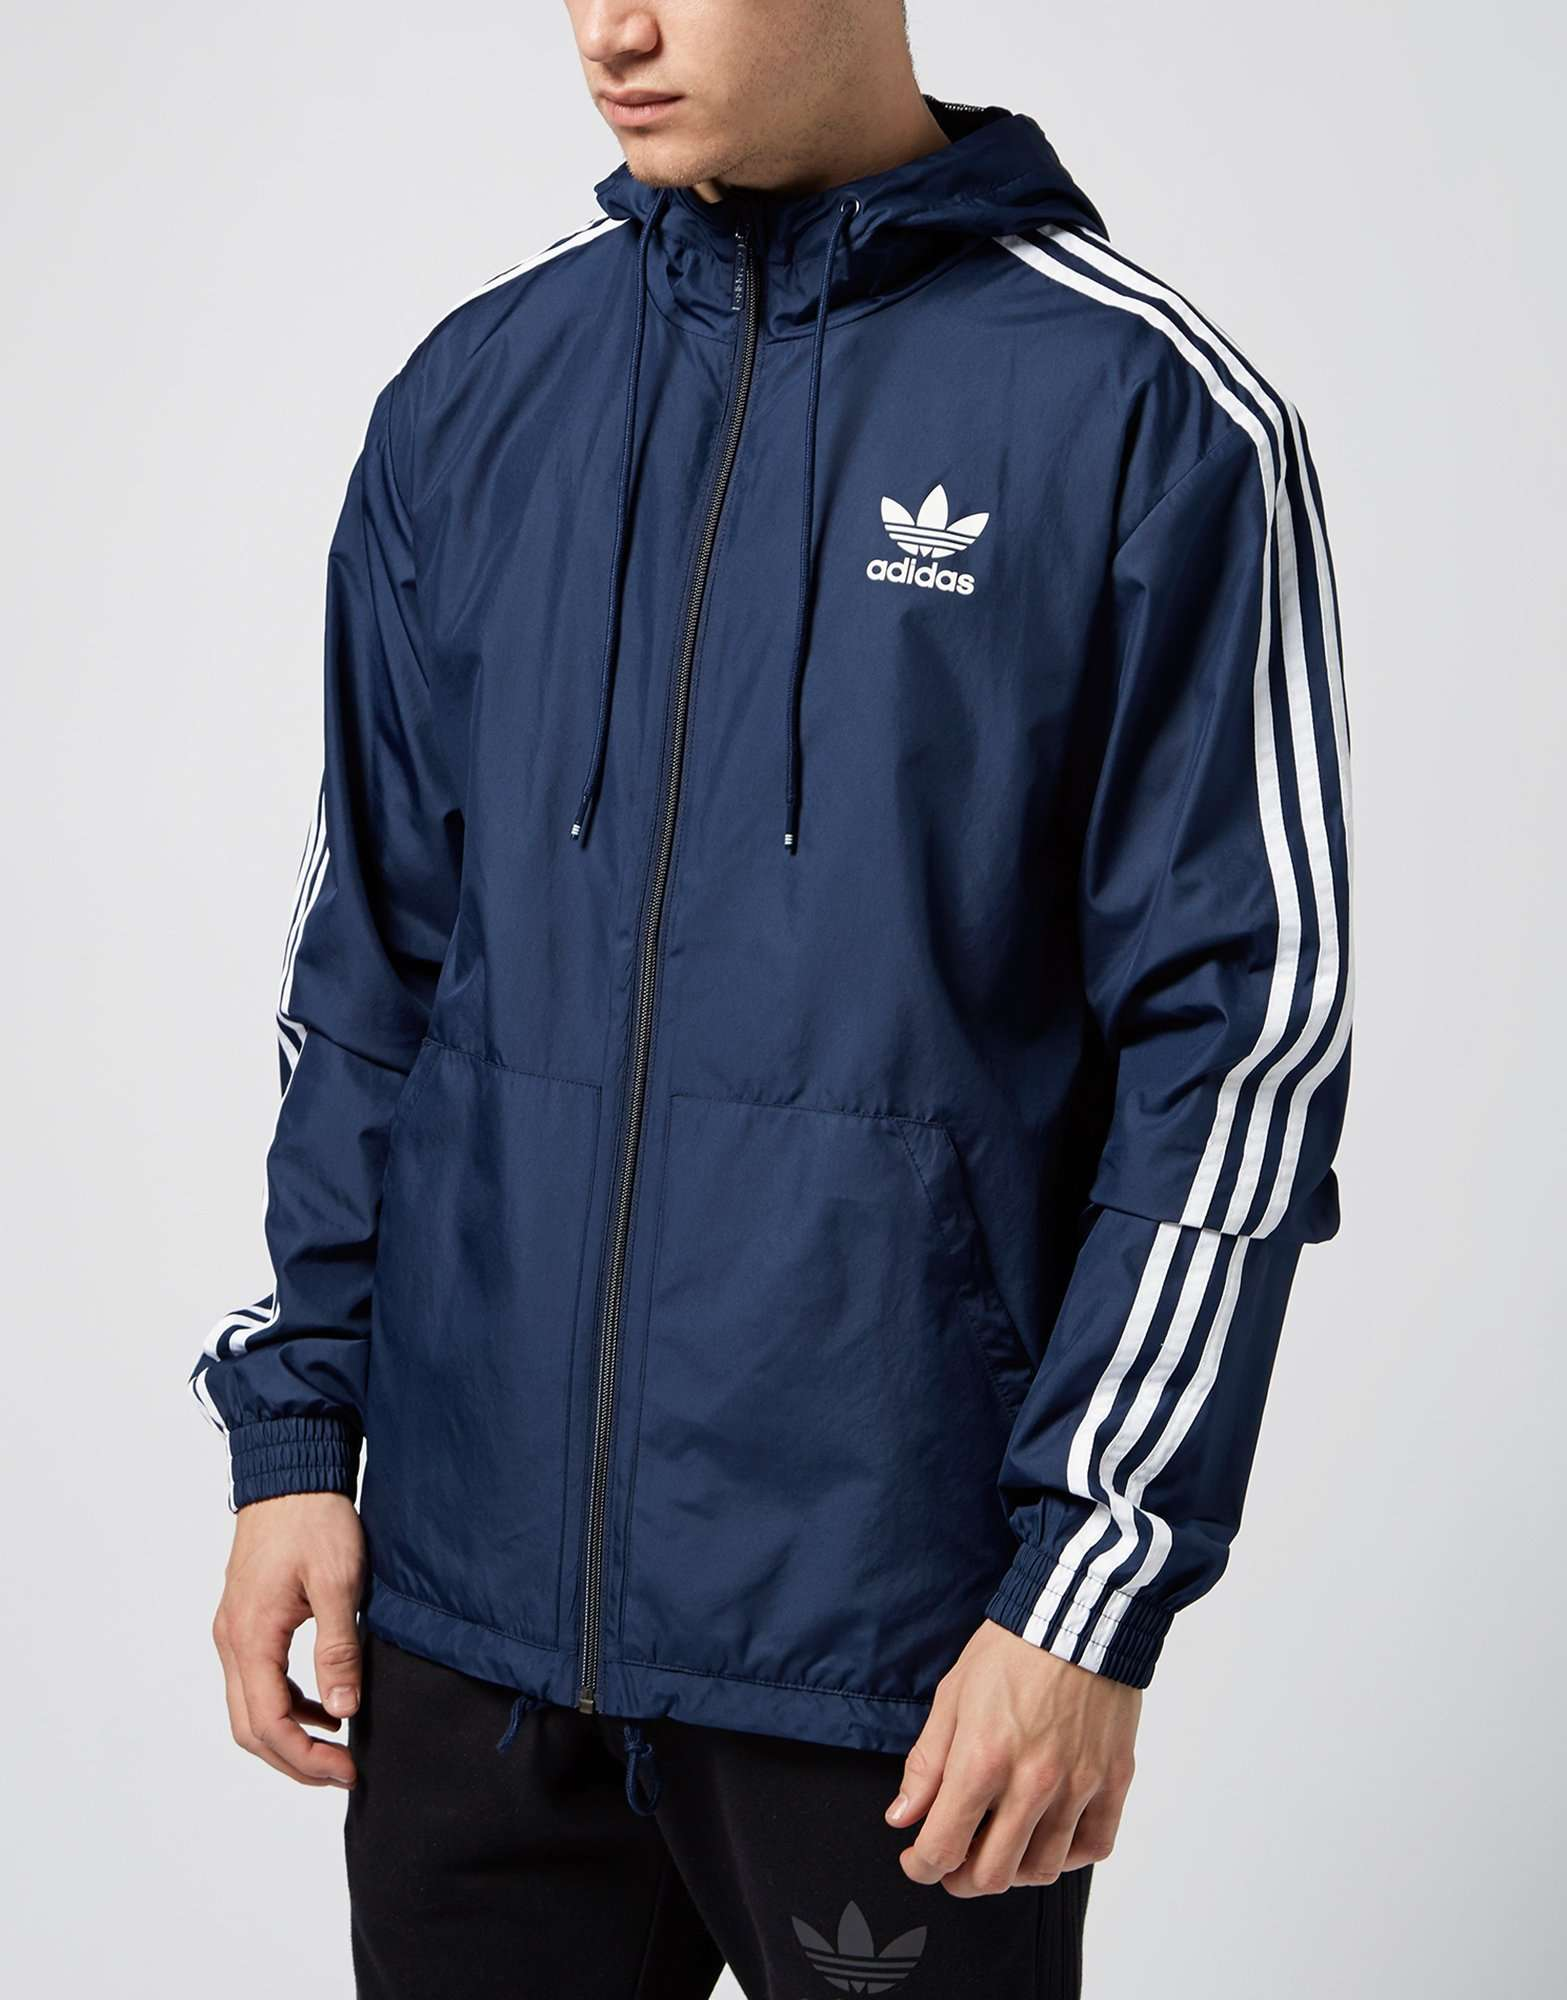 adidas originals itasca jacket scotts menswear. Black Bedroom Furniture Sets. Home Design Ideas